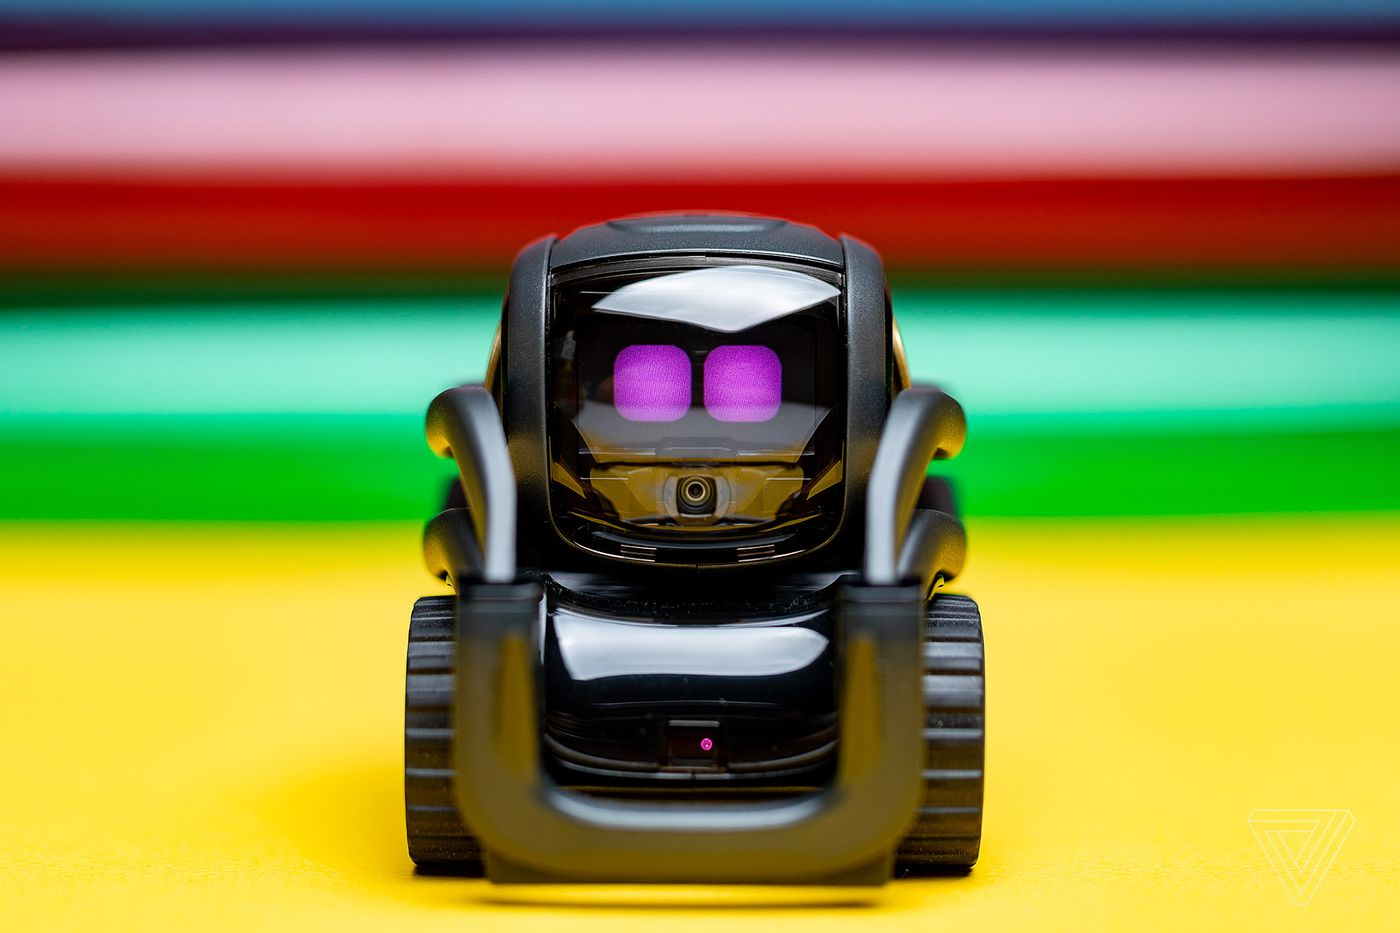 Anki's toy robots are being saved from a digital death   The Verge